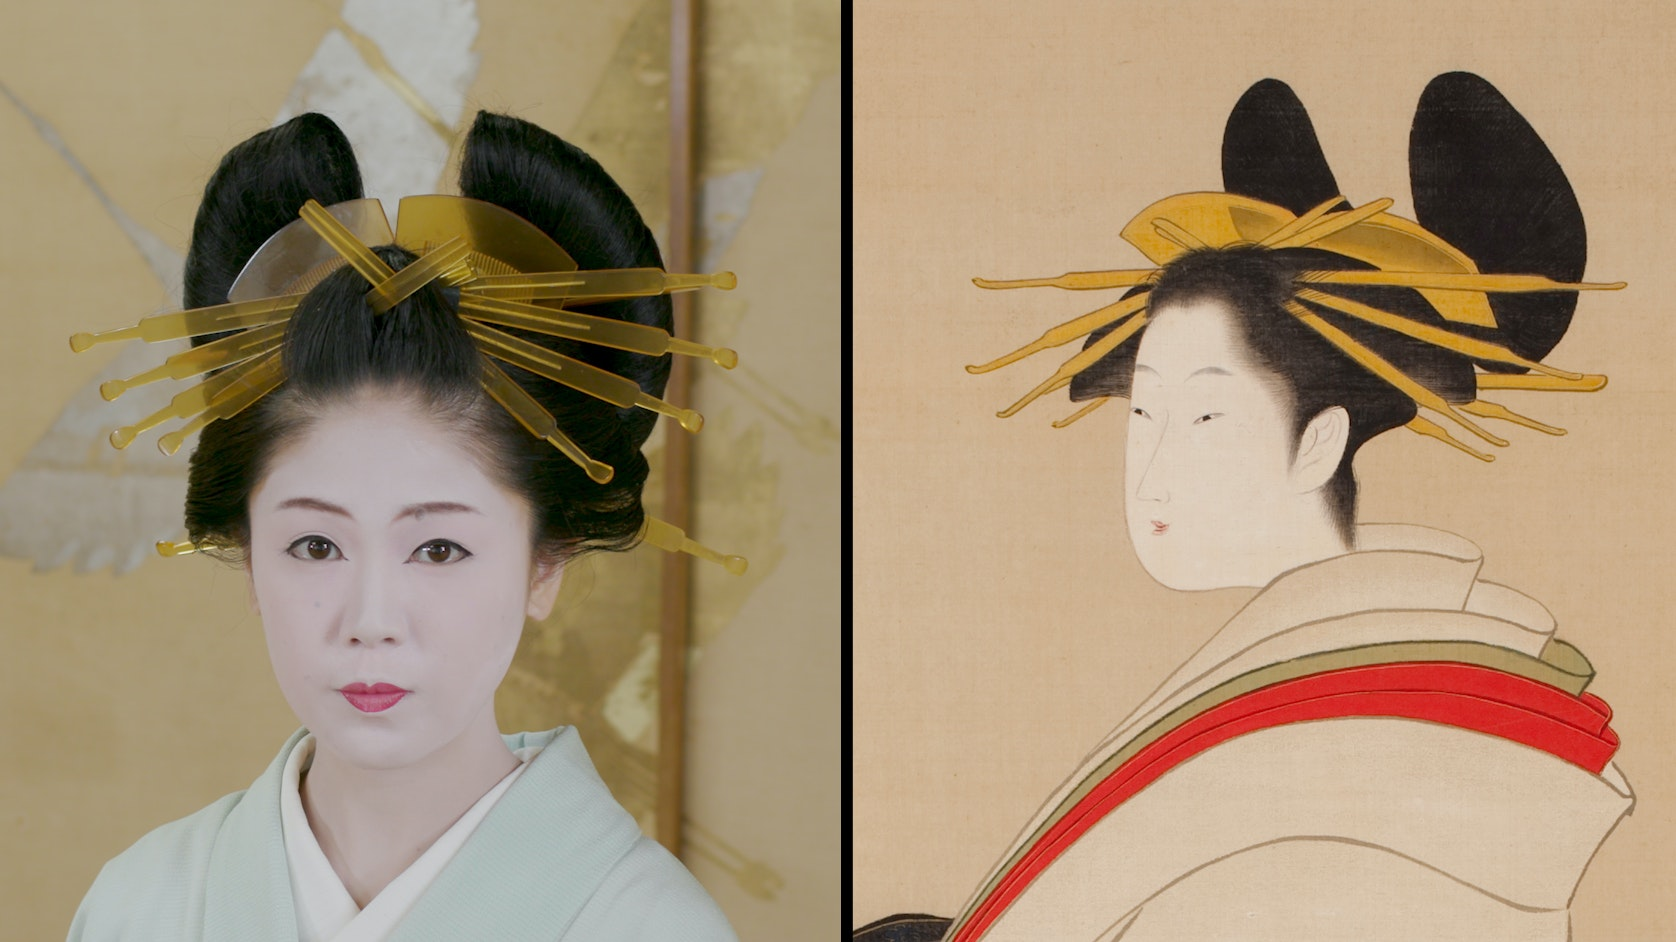 Ukiyo E Hairstyle in artwork and on liviing model